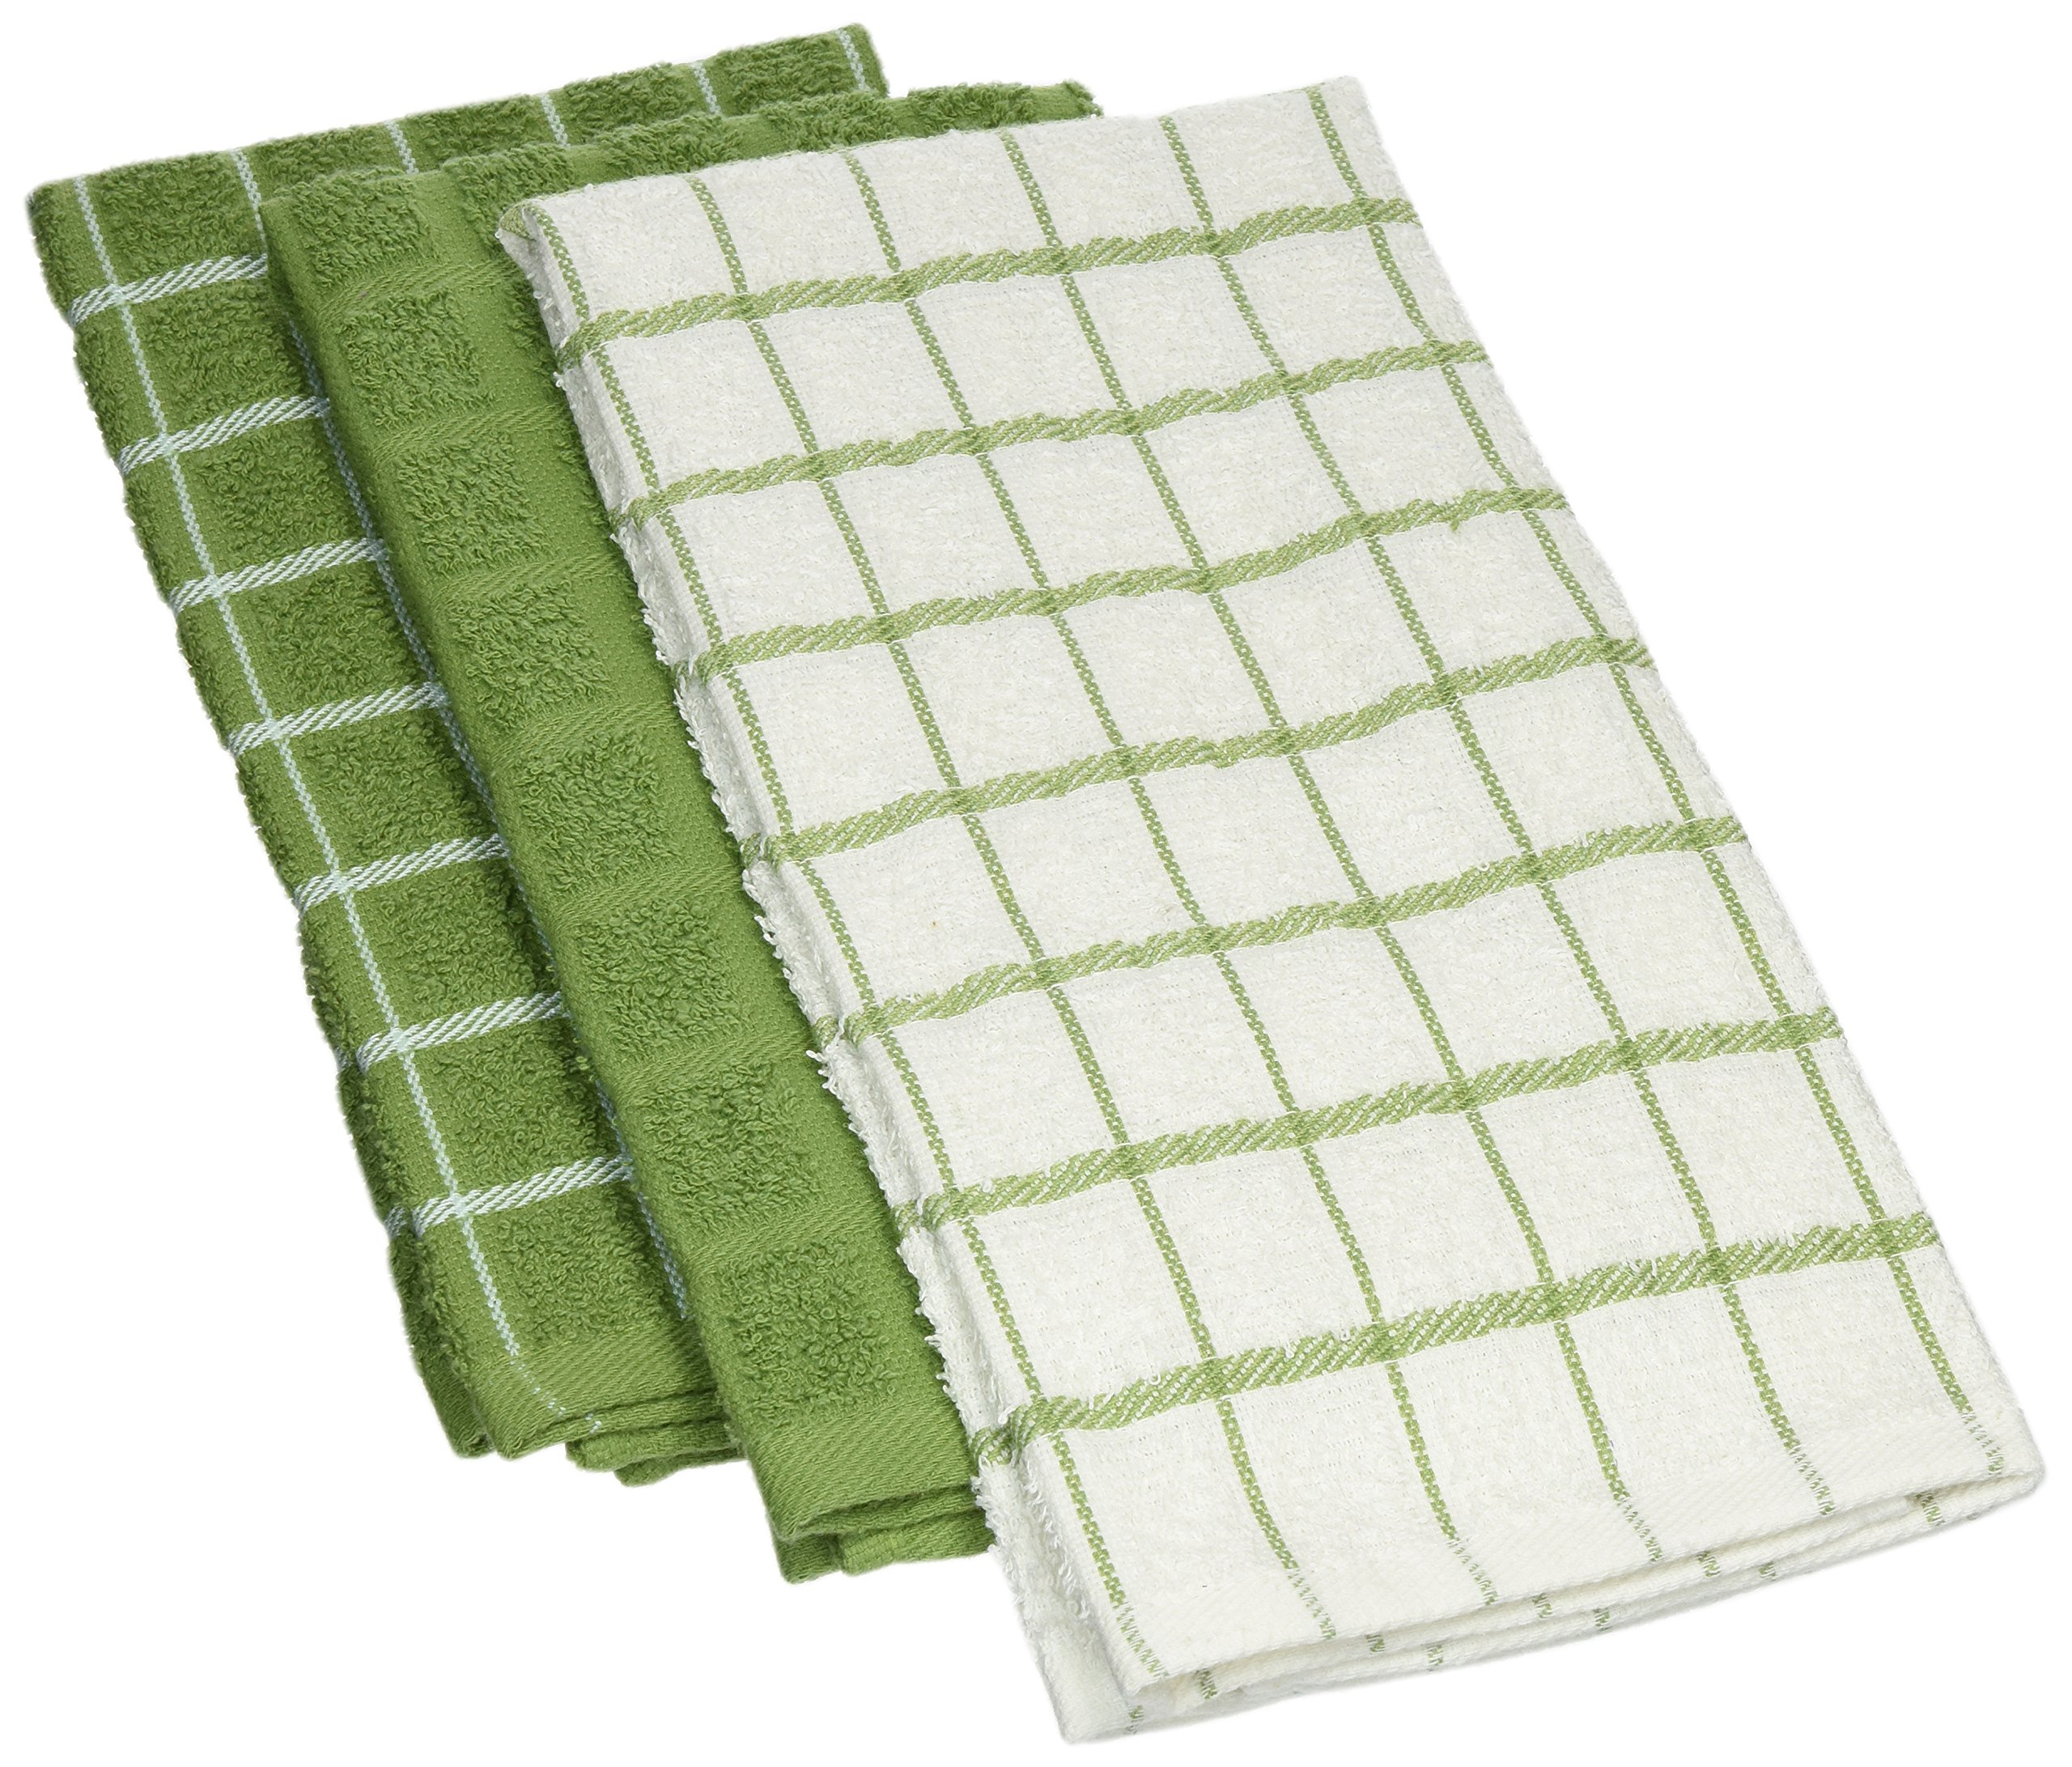 "Ritz 100% Cotton Terry Kitchen Dish Towels, Highly Absorbent, 25"" x 15"", 3-Pack, Cactus Green"